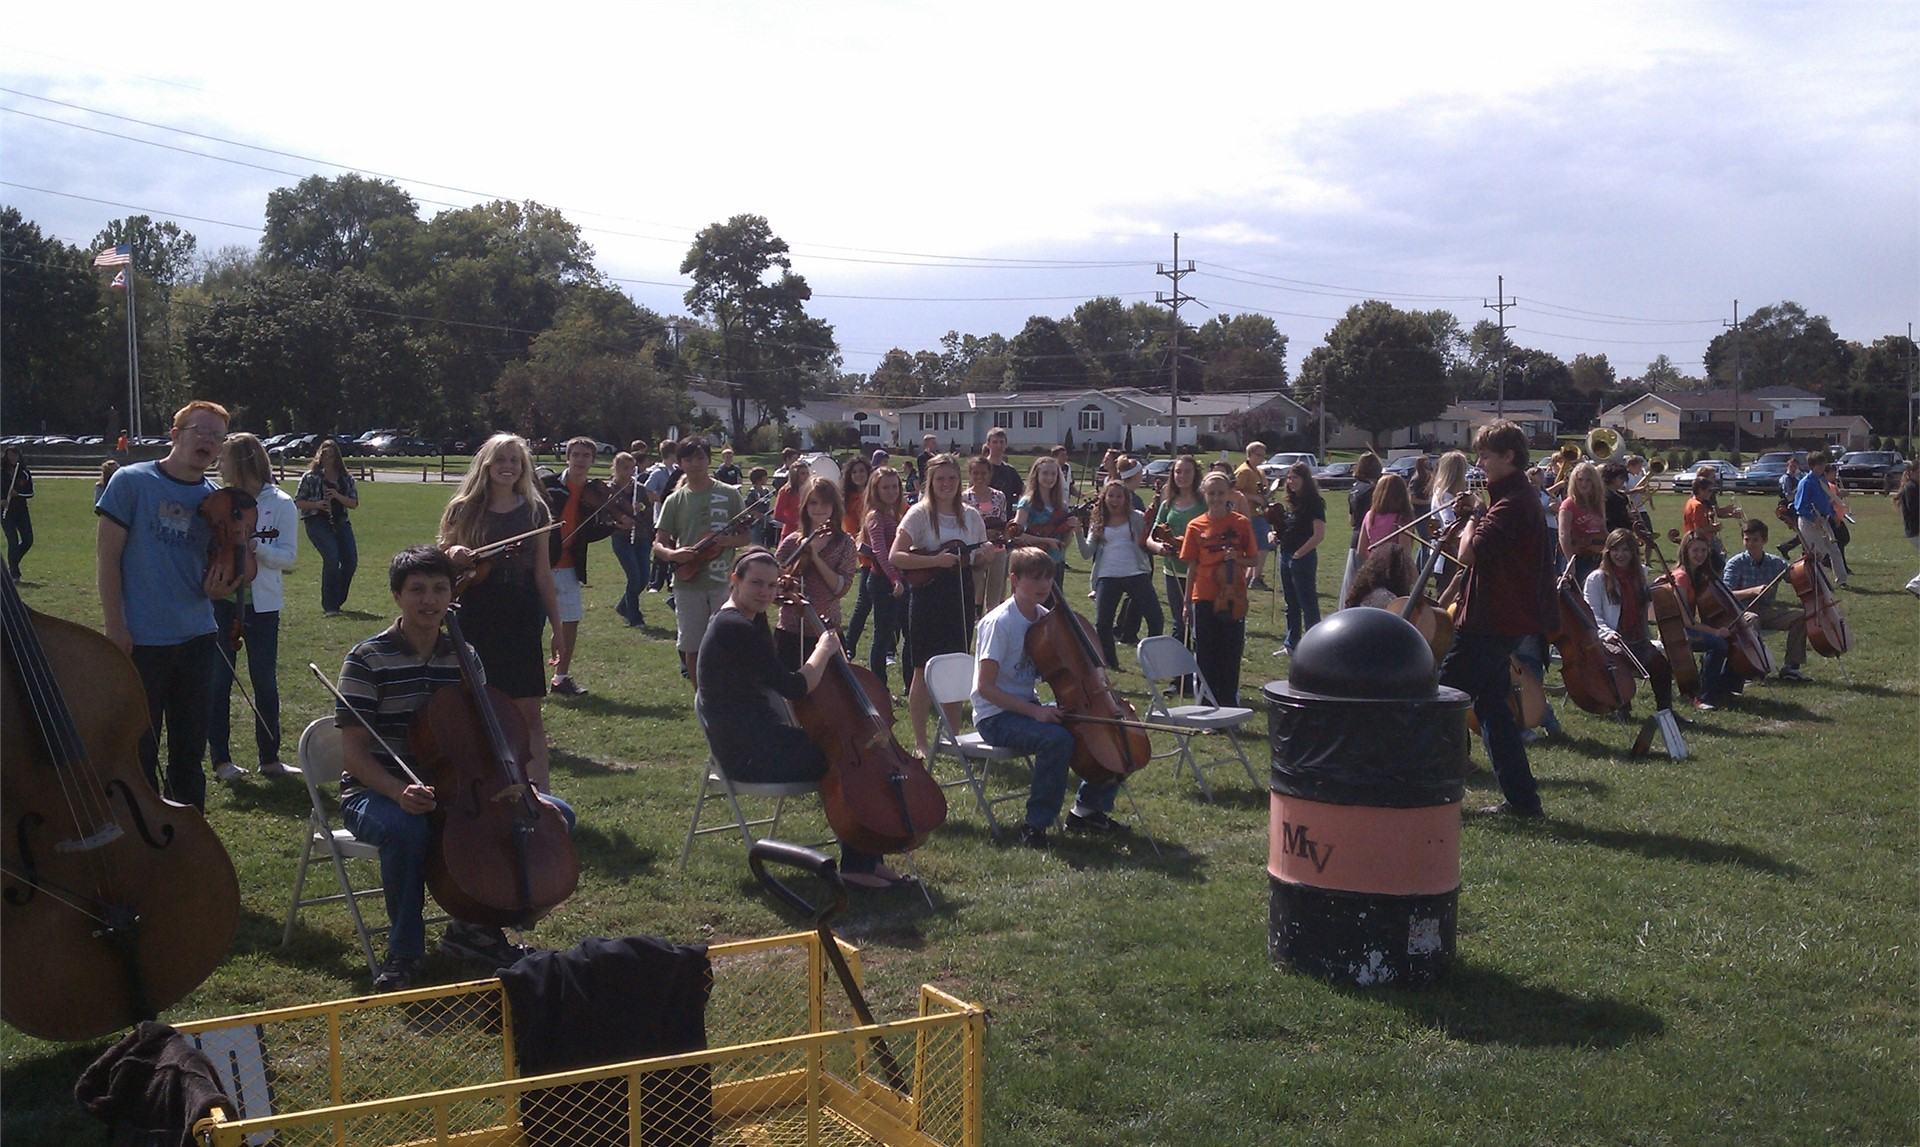 Orchestra students practice on the marching band field.